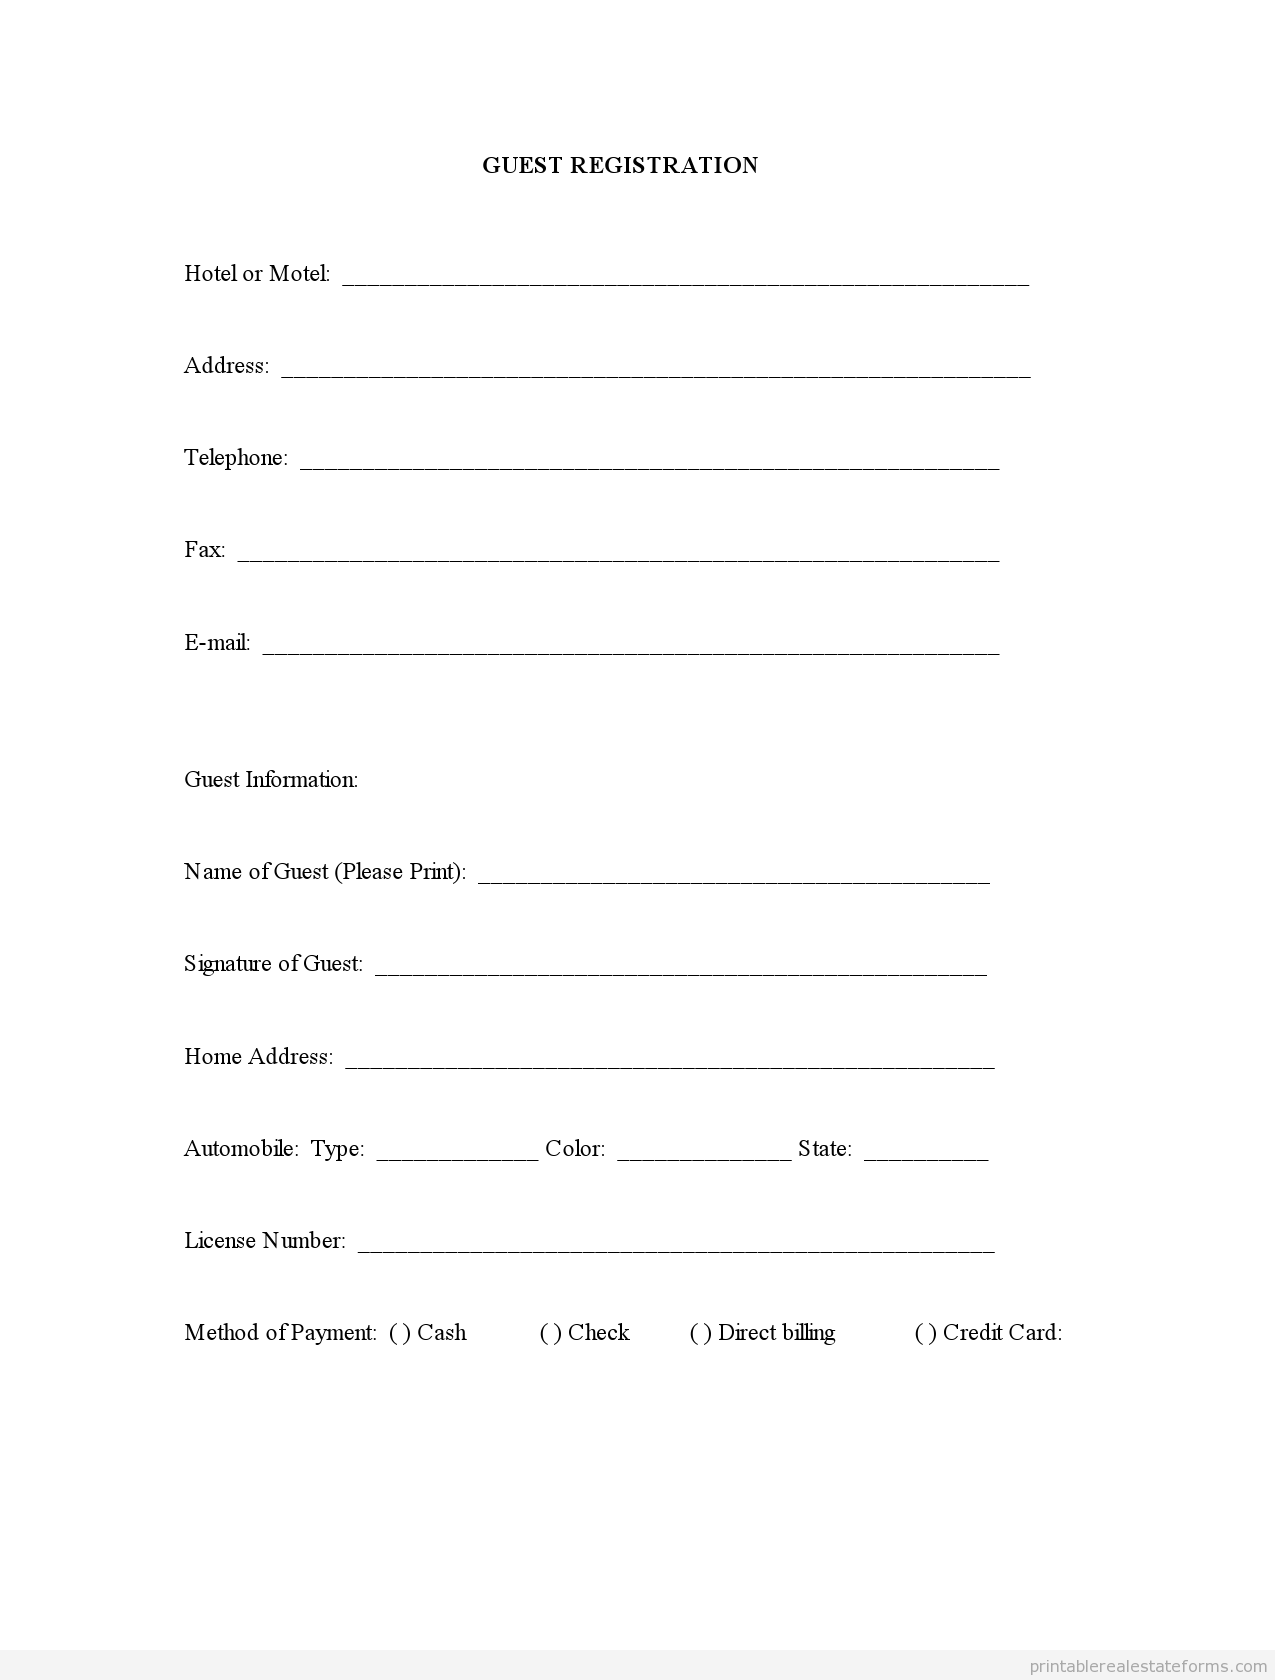 Sample printable guest registration form printable real estate sample printable guest registration form falaconquin